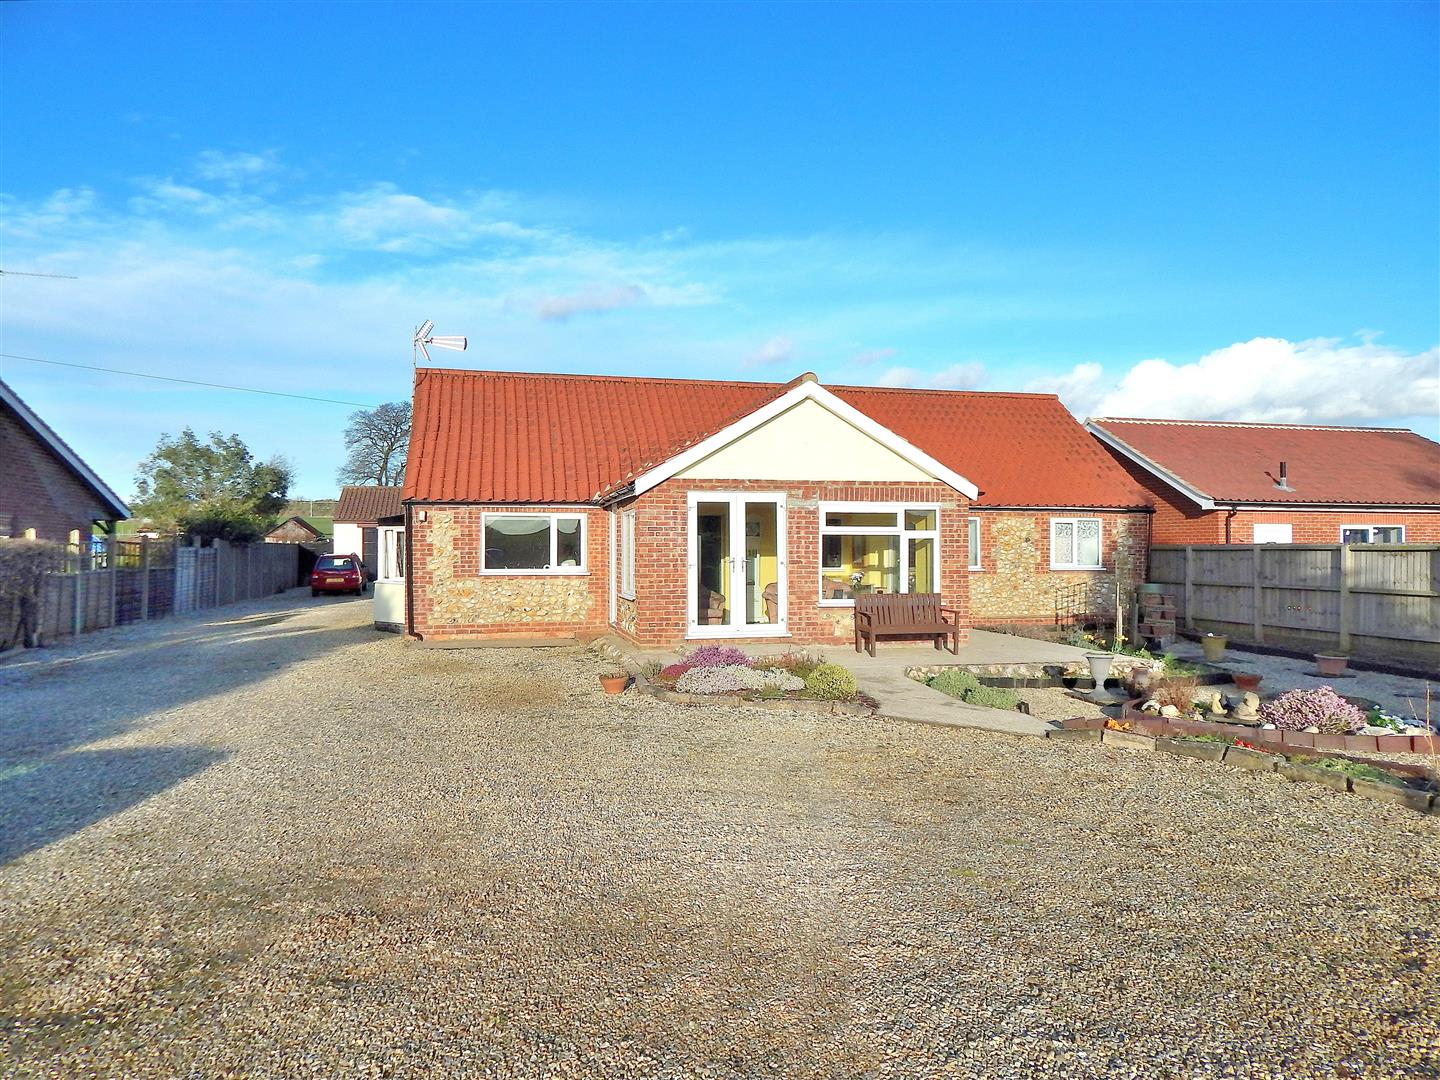 3 bed detached bungalow for sale in King's Lynn, PE31 8PX - Property Image 1